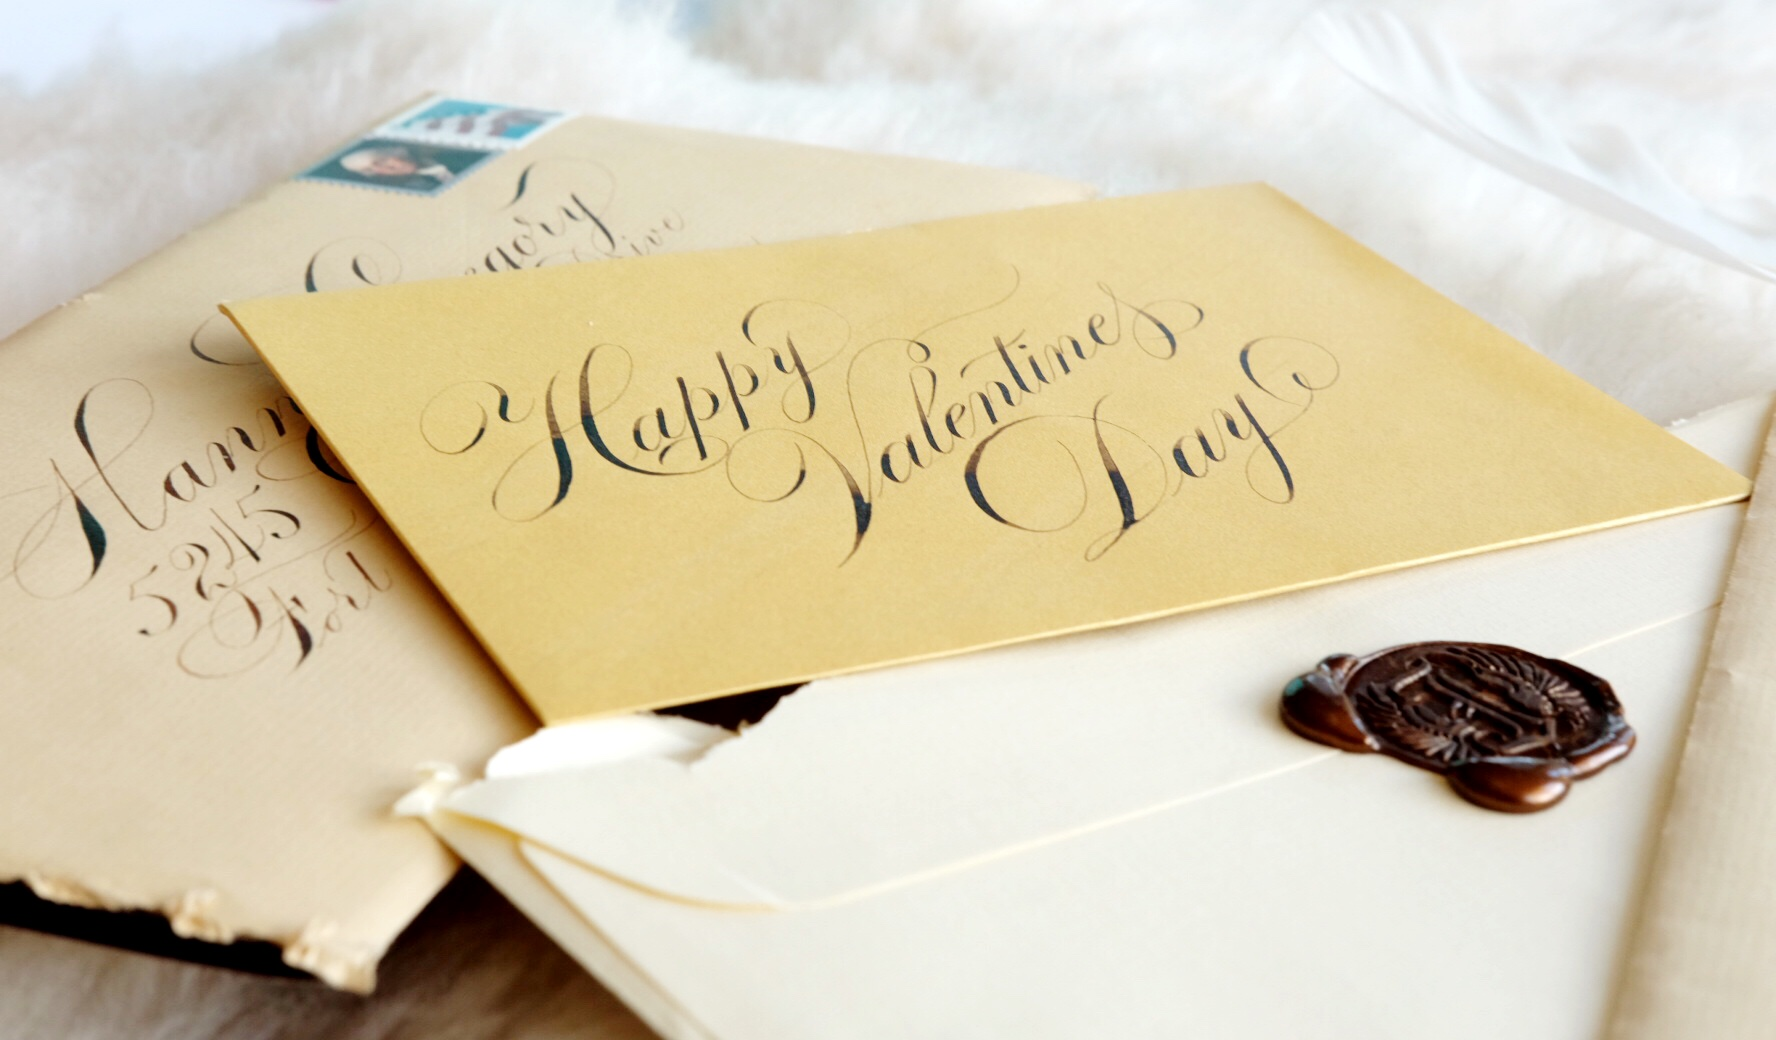 """Jake designed his own wax seal: the letter """"J"""" accompanied by a pair of wings. Each one of his letters to Hannah is sealed with his custom seal in wax that matches the letter's stationery."""